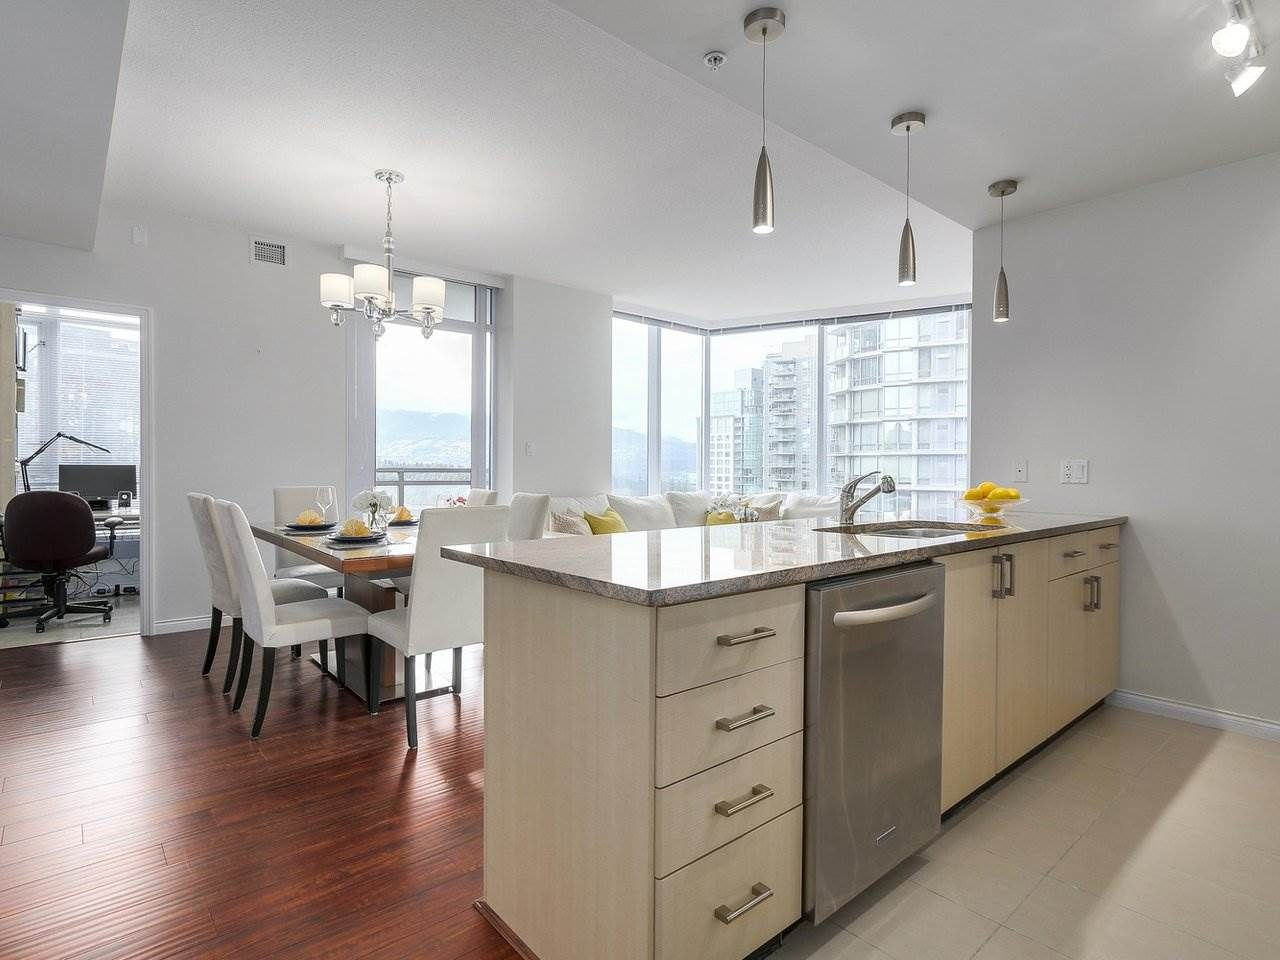 """Main Photo: 1705 1211 MELVILLE Street in Vancouver: Coal Harbour Condo for sale in """"THE RITZ"""" (Vancouver West)  : MLS®# R2173539"""